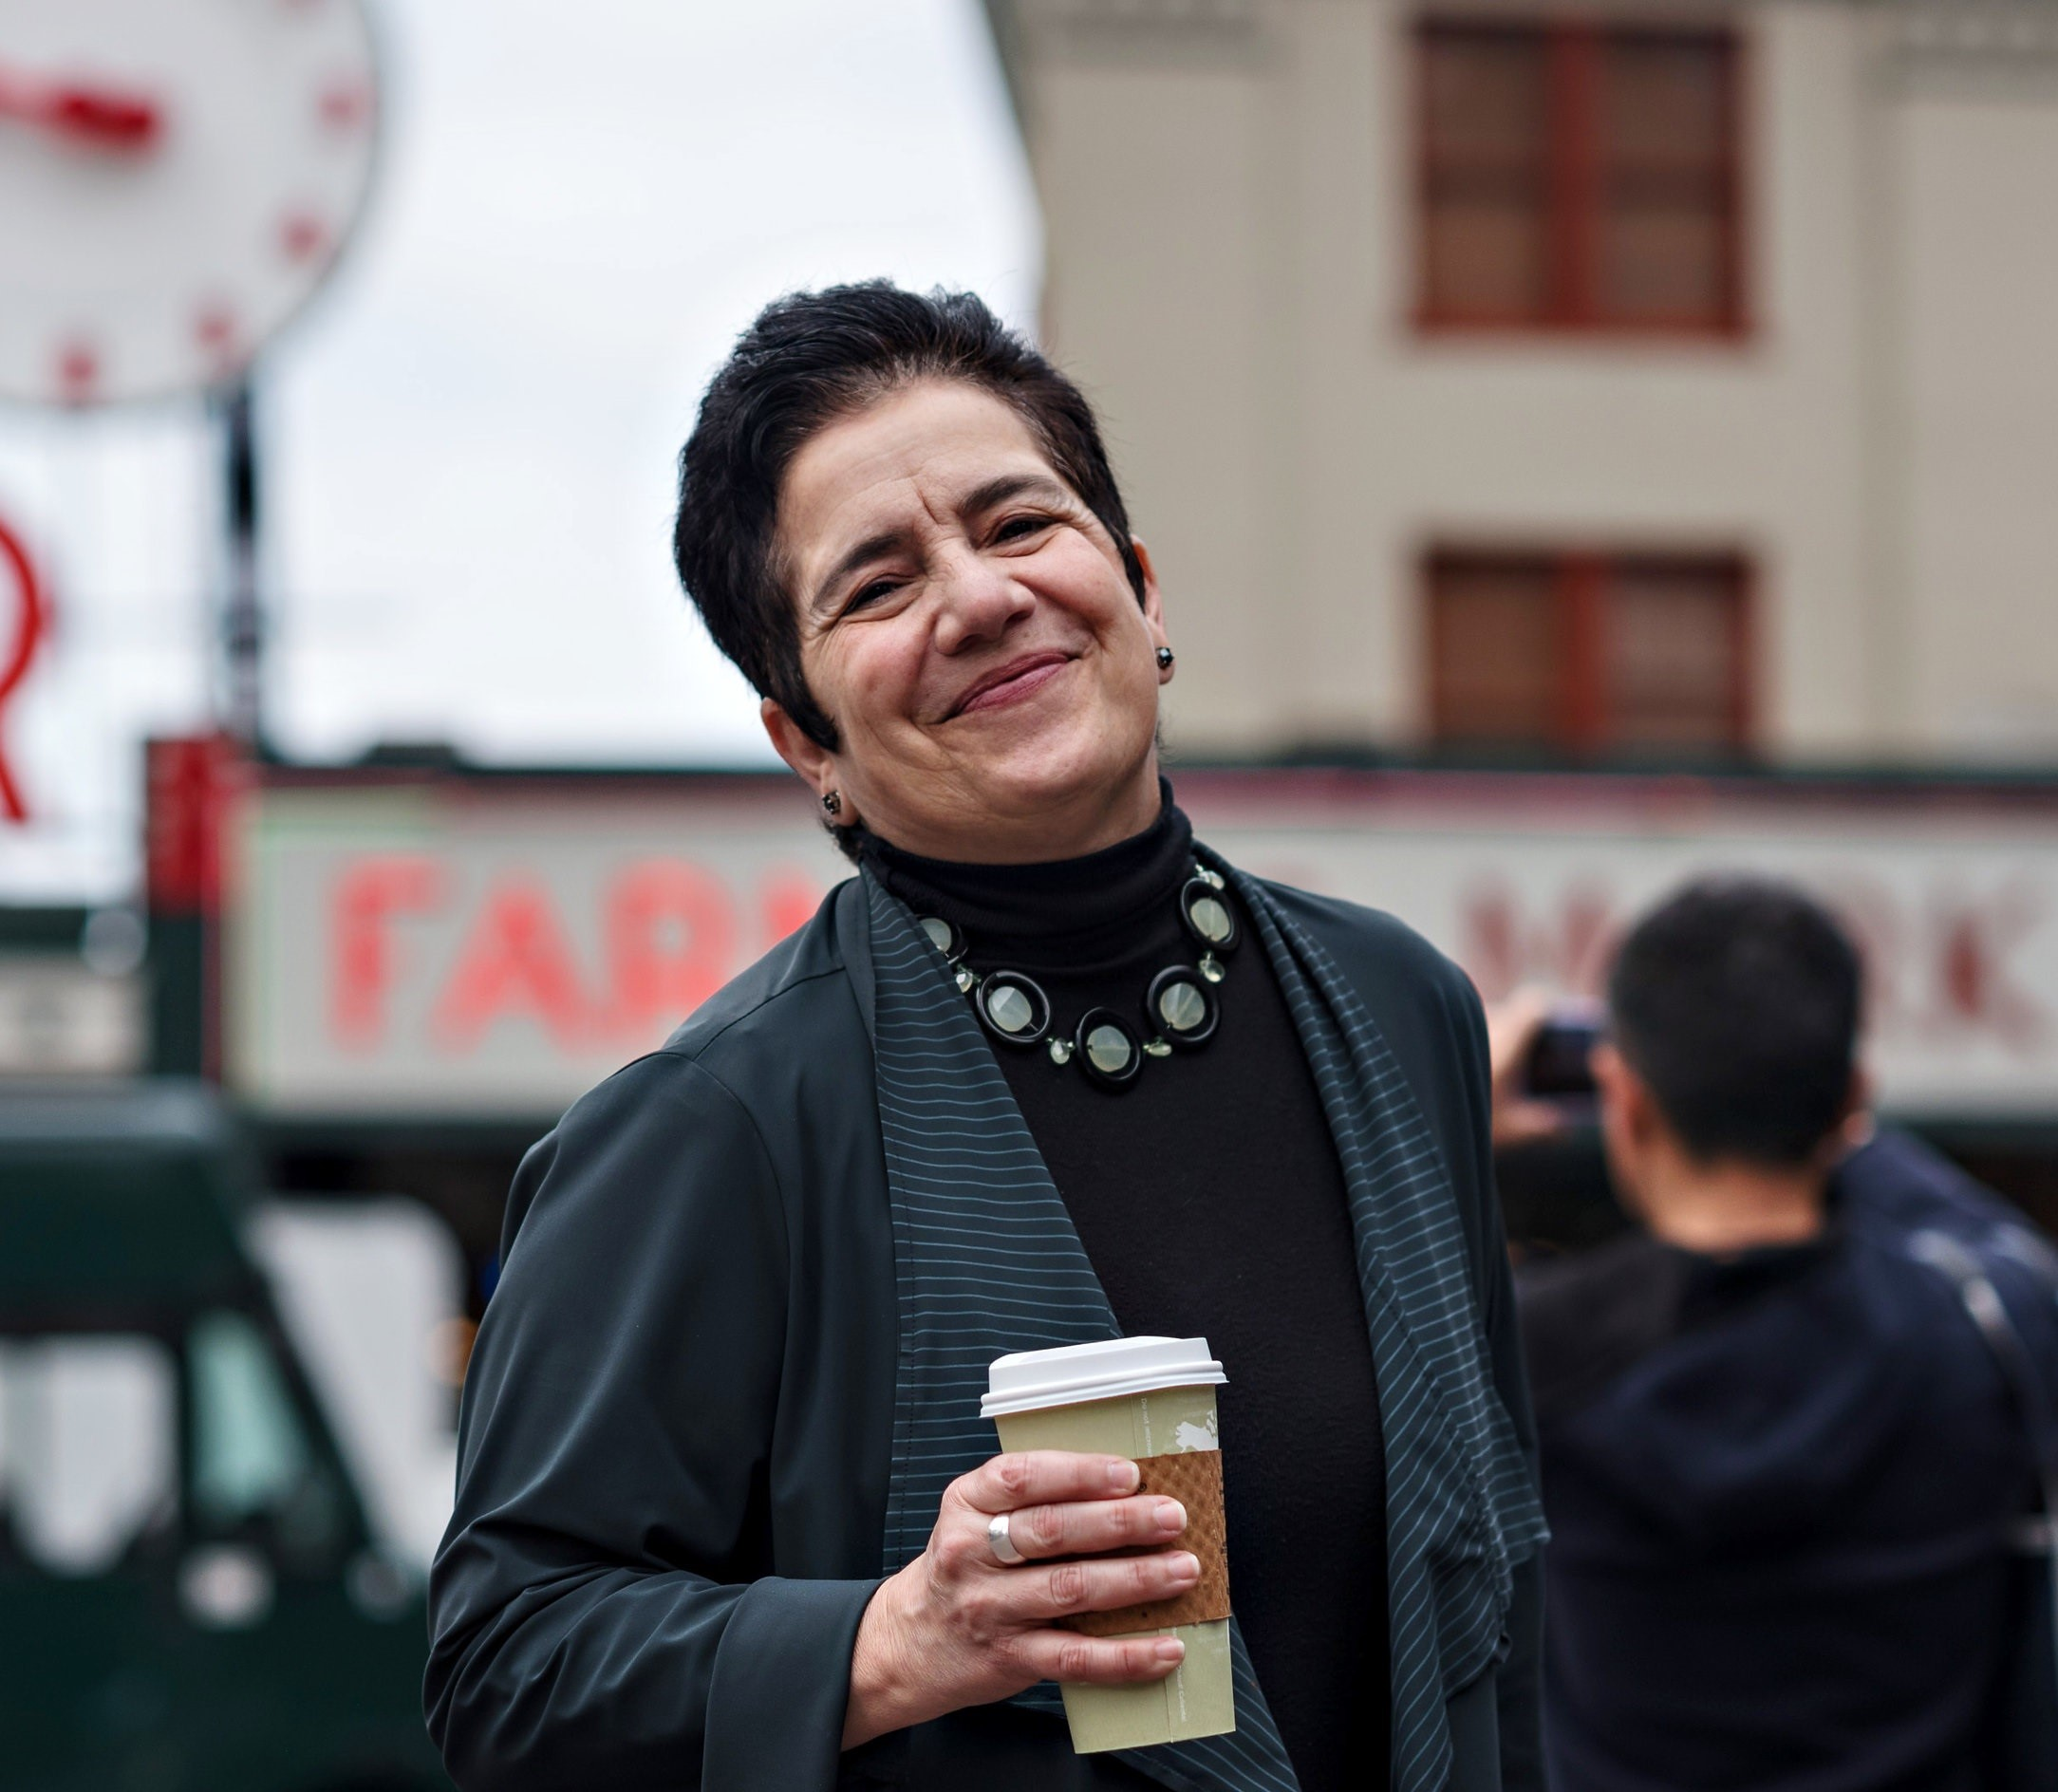 Mary Bacarella, Pike Place Market - Mary Bacarella serves as the Executive Director of the Pike Place Market Preservation and Development Authority (PDA). She joined the Market in January 2018. In her role at Pike Place Market, Bacarella is responsible for the overall operations including finance, marketing, commercial assets, residential housing, facilities management and the preservation and development of the 110-year-old public market and 9-acre market historical district.